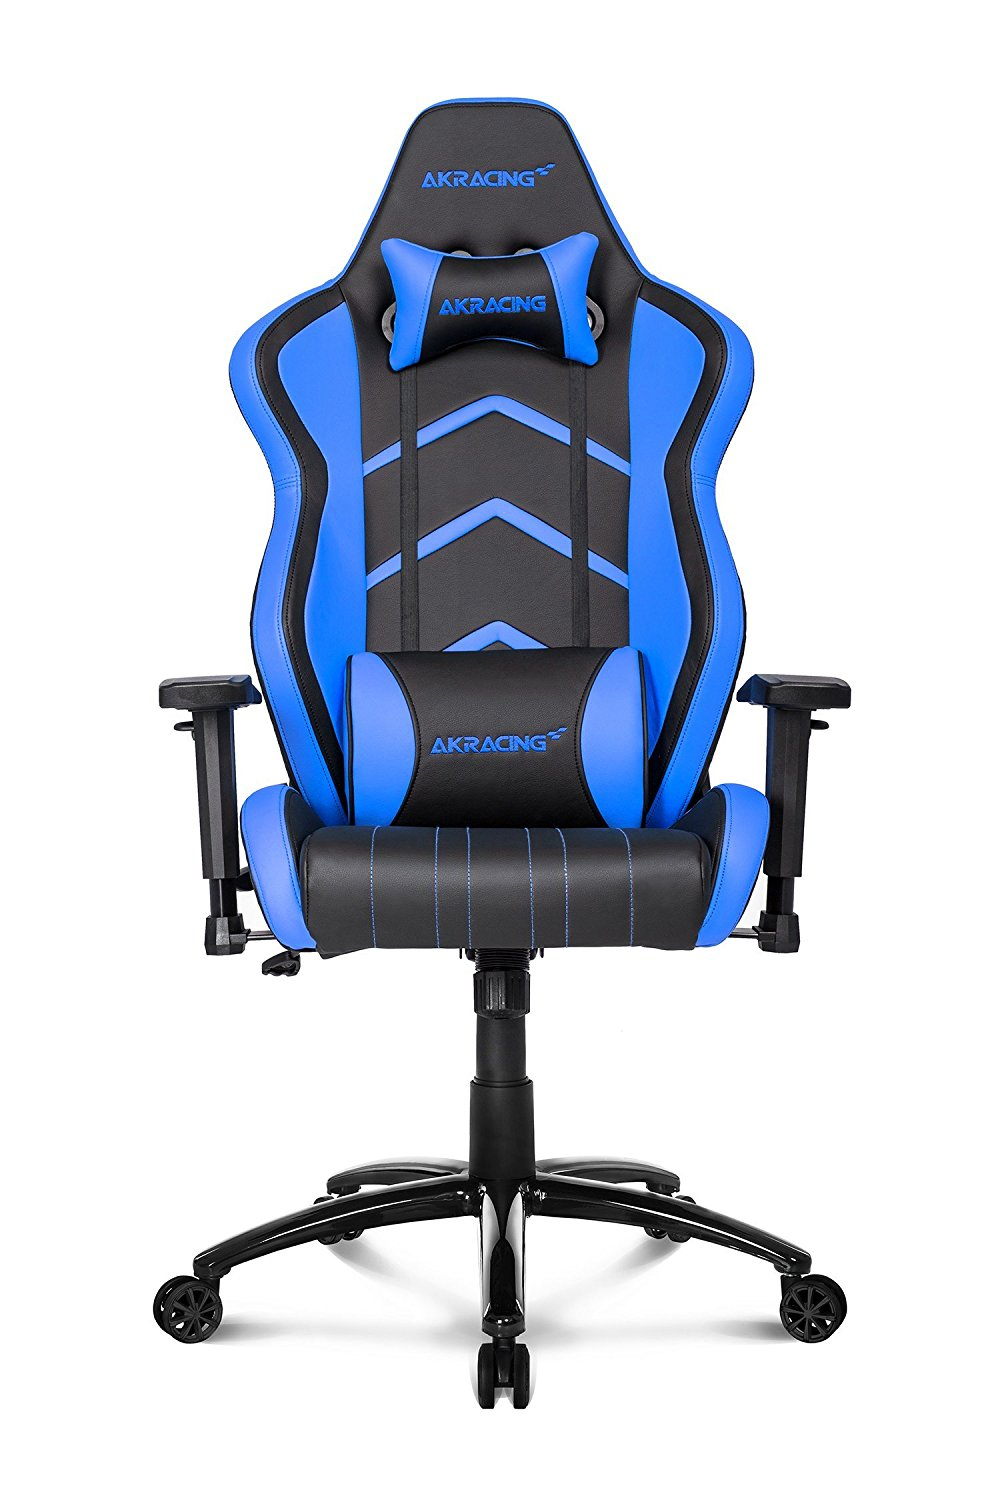 Cloud 9 Gaming Chair Best Gaming Chairs For Cs Go In 2019 Approved By Pro Players